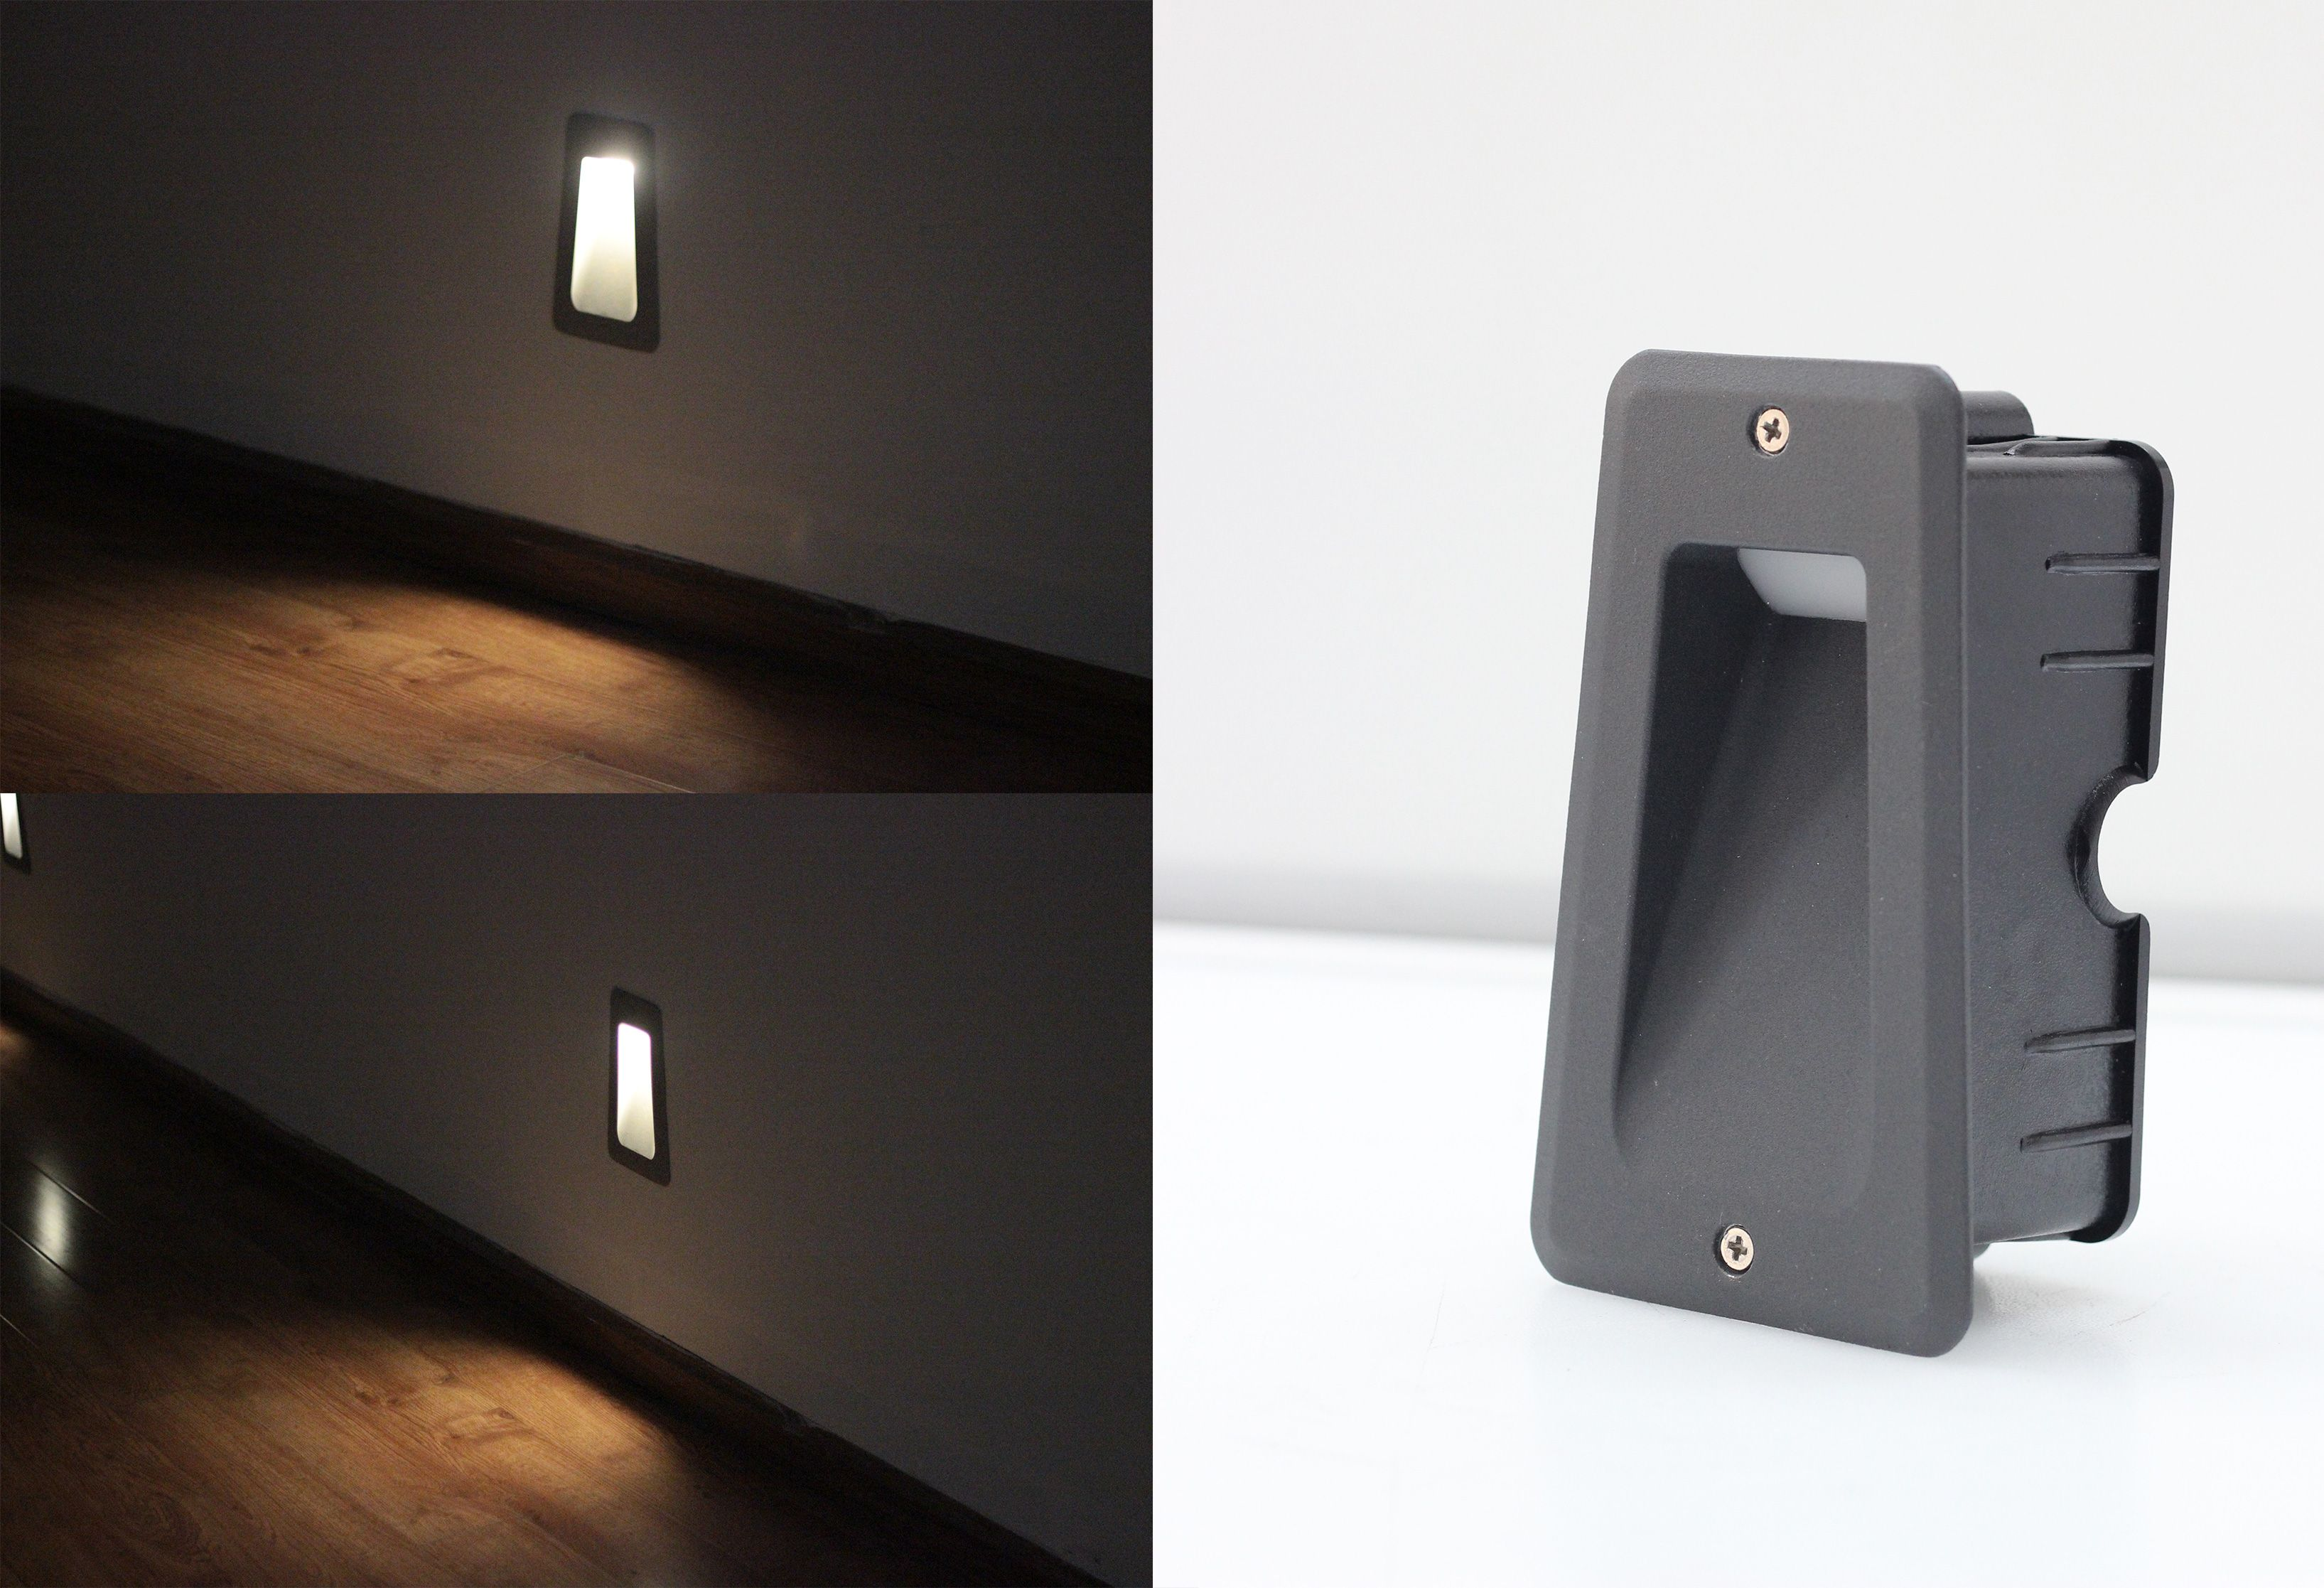 Lighting Art On The Walls Led Step Lights Economical Serie With High Quality Performance Helps Your Garden With Images Led Wall Lights Led Step Lights Step Lighting